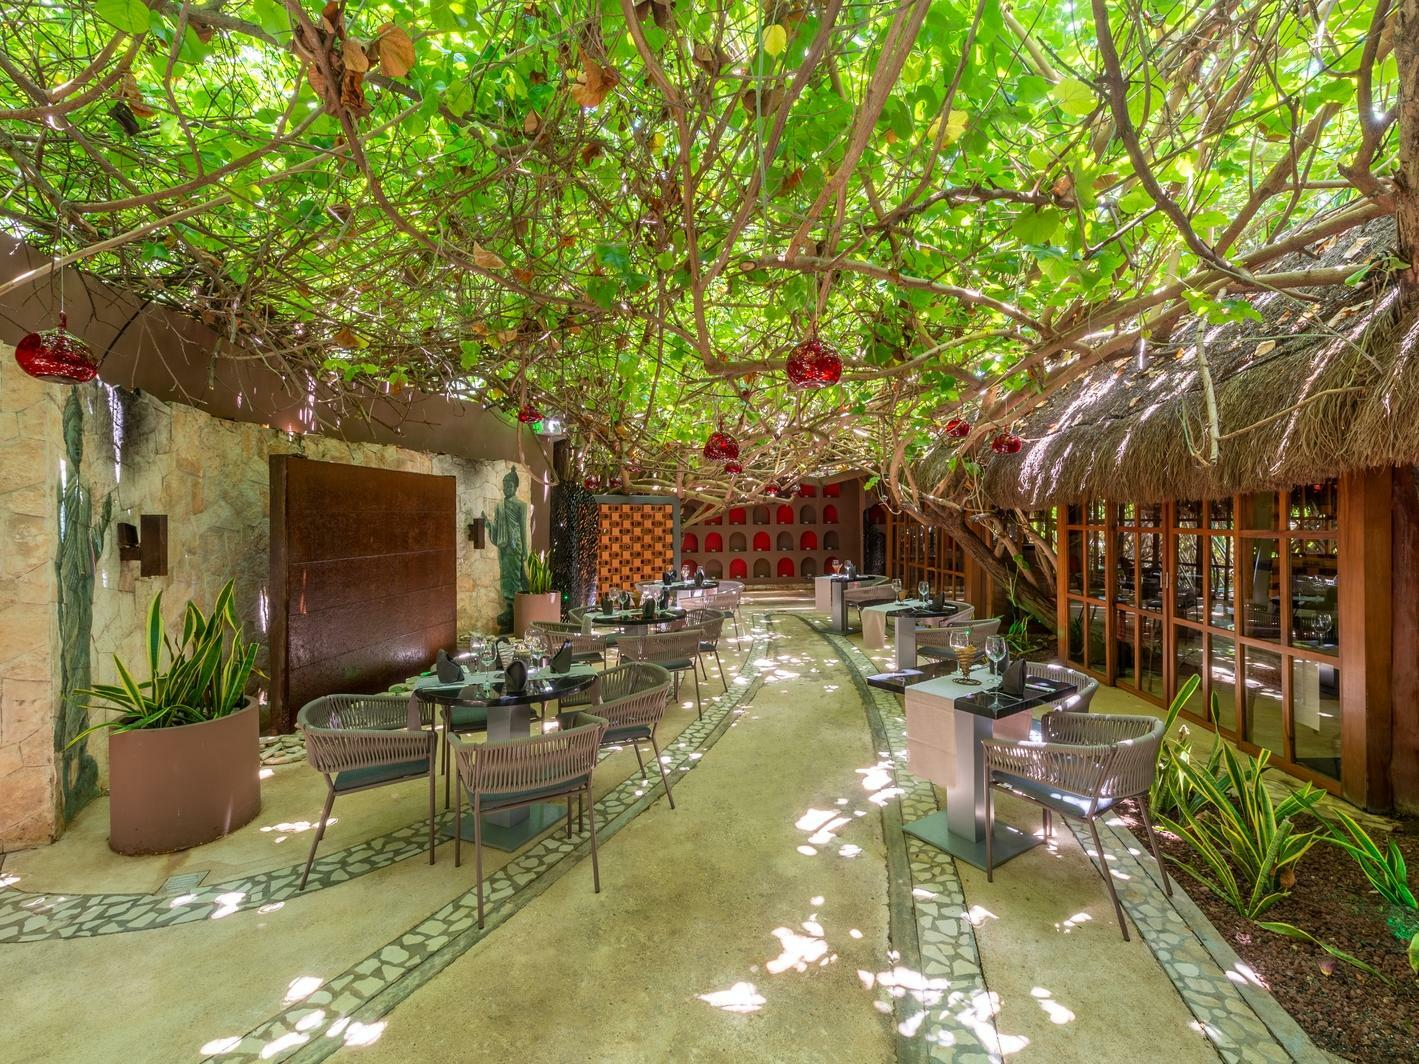 outdoor diningw with overhanging tree brances